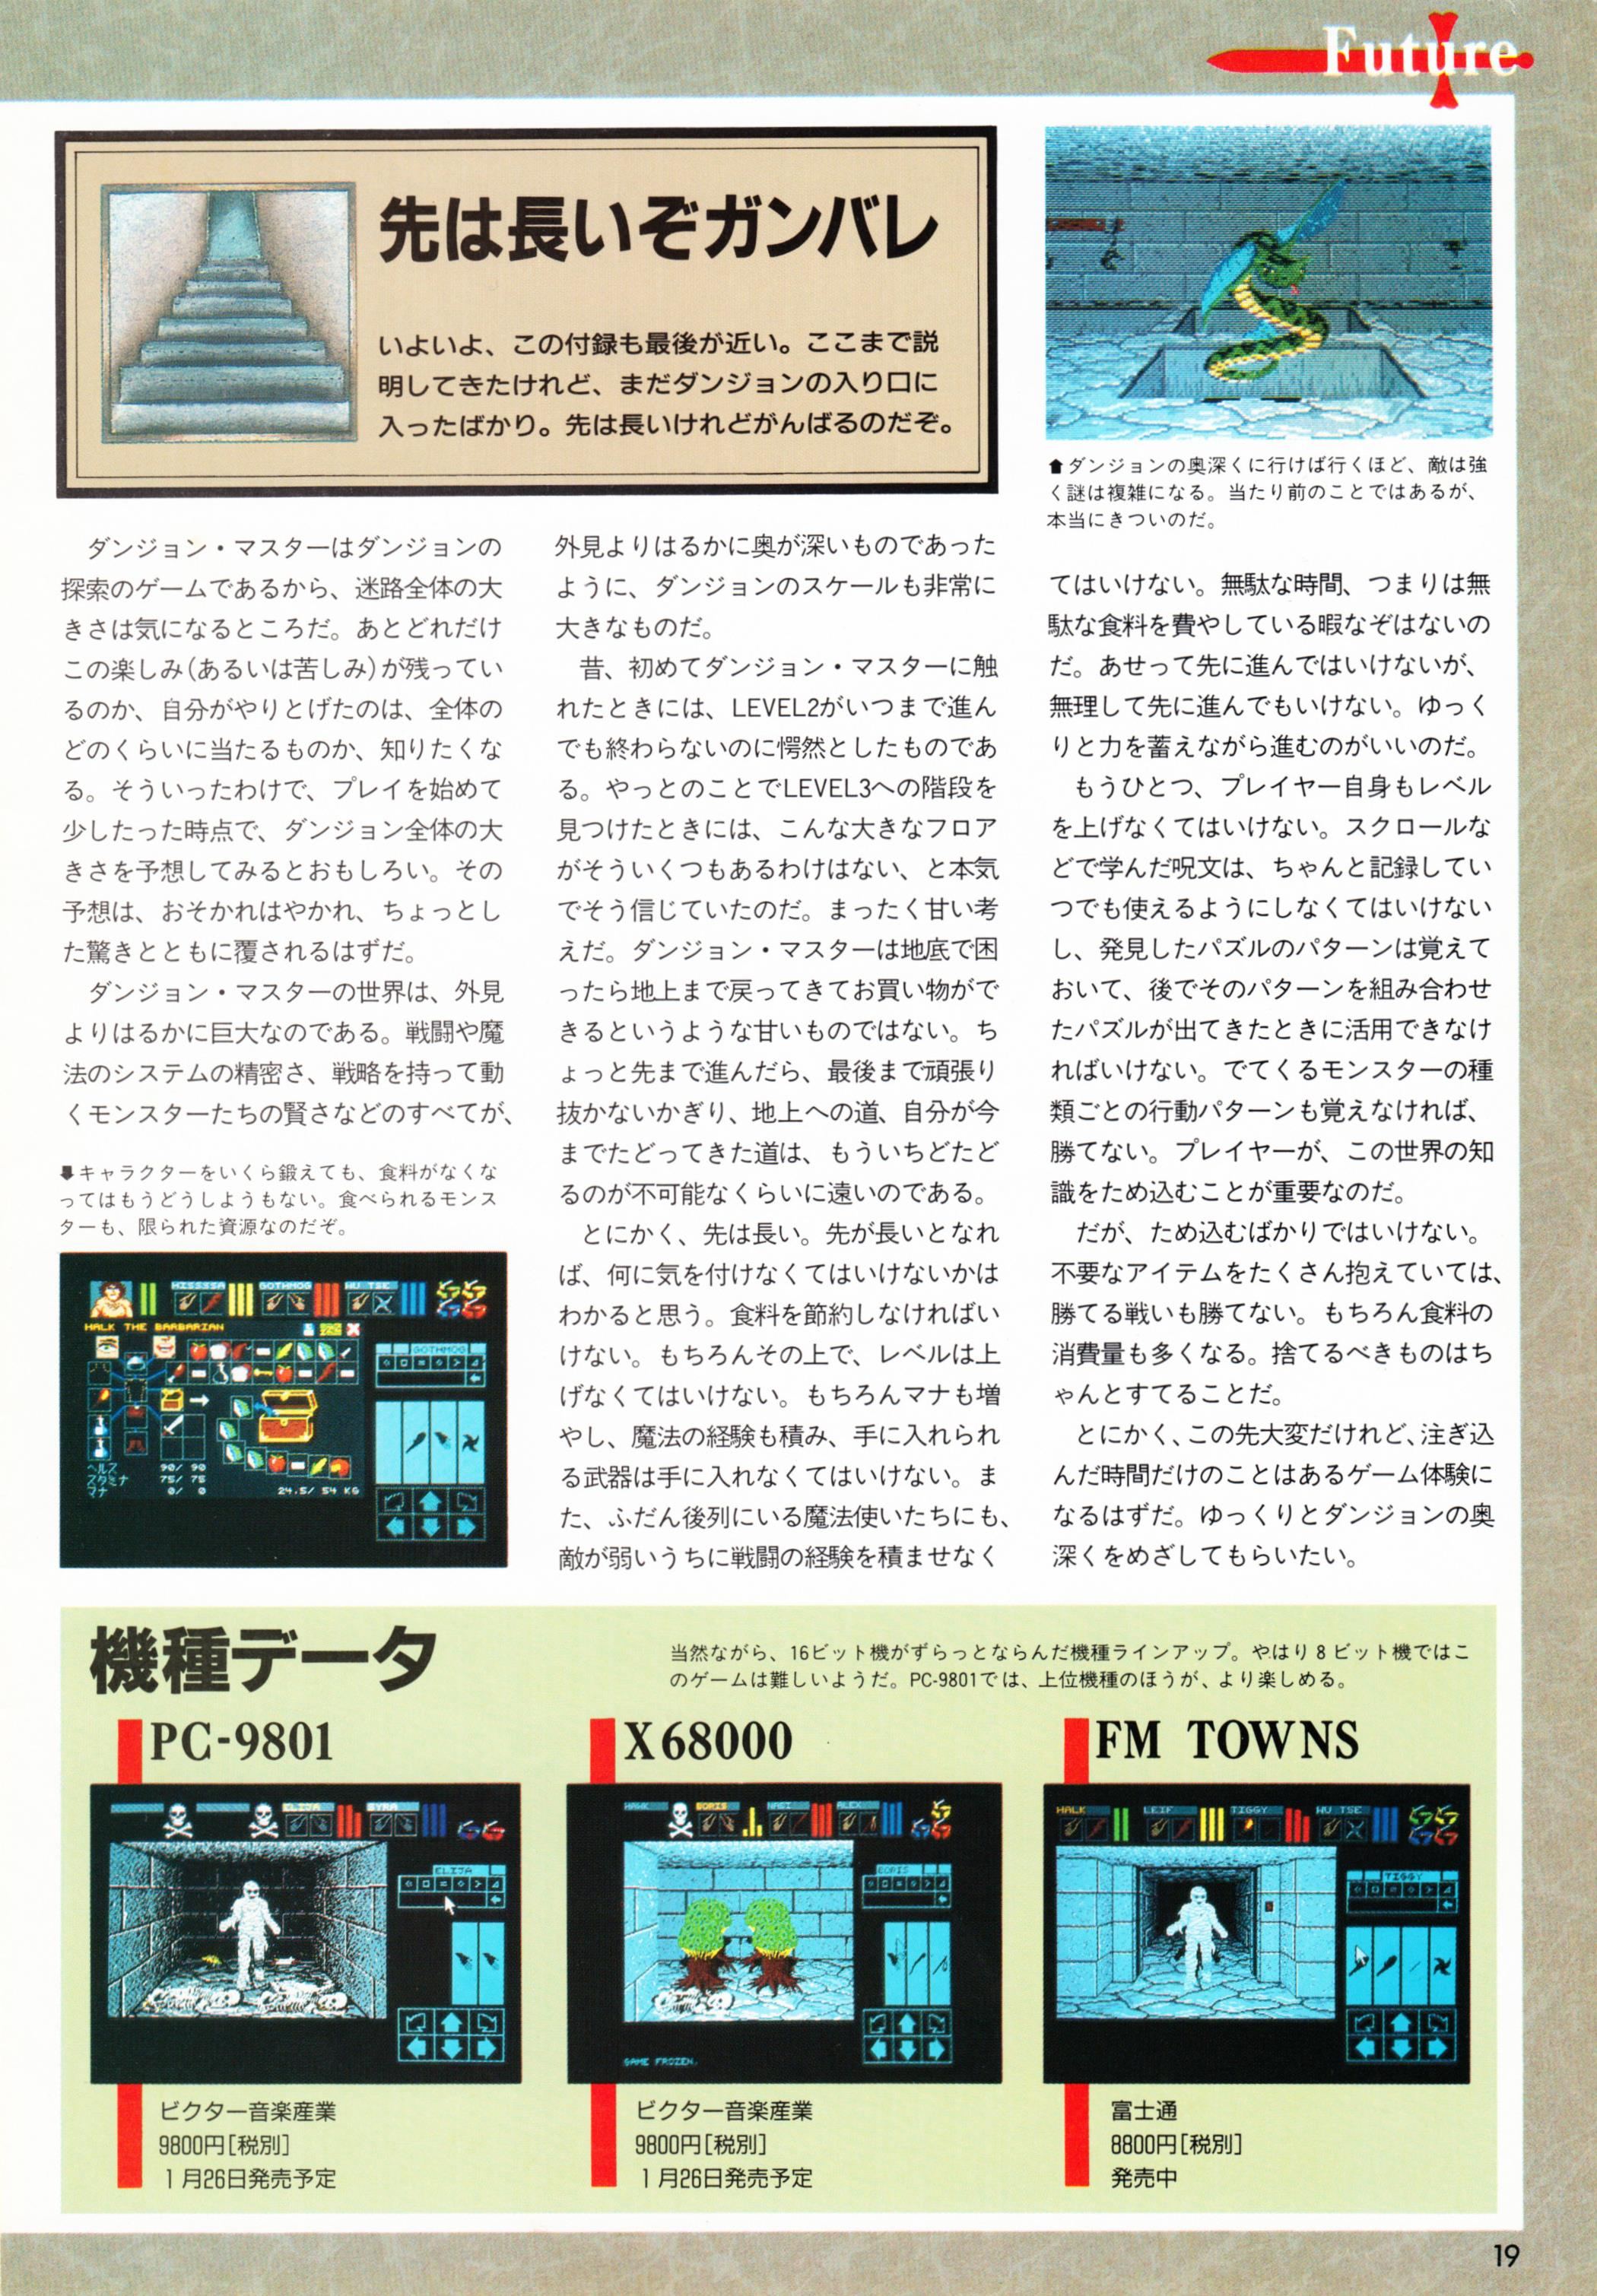 Special Supplement 2 - Dungeon Master Guide published in Japanese magazine 'Login', Vol 9 No 3 02 February 1990, Page 19